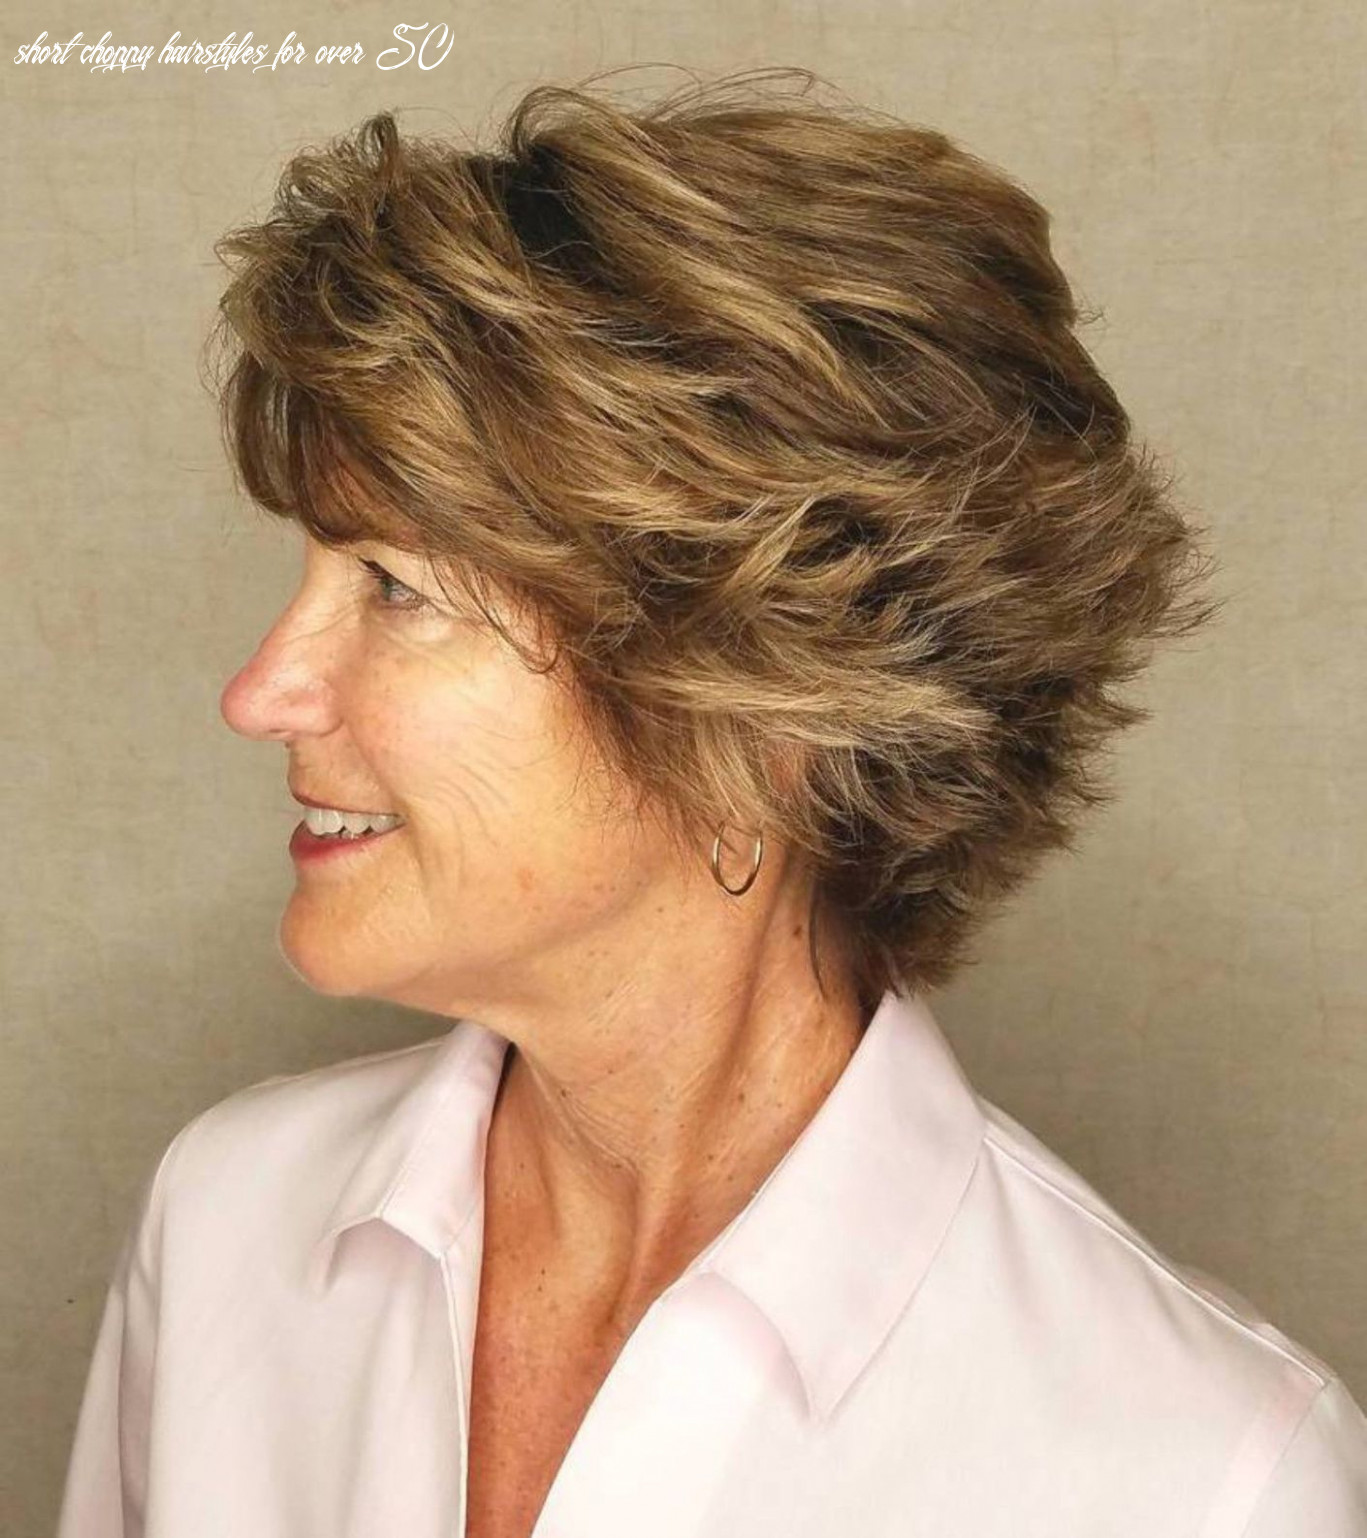 10 Classy and Simple Short Hairstyles for Women over 10 | Thick ...